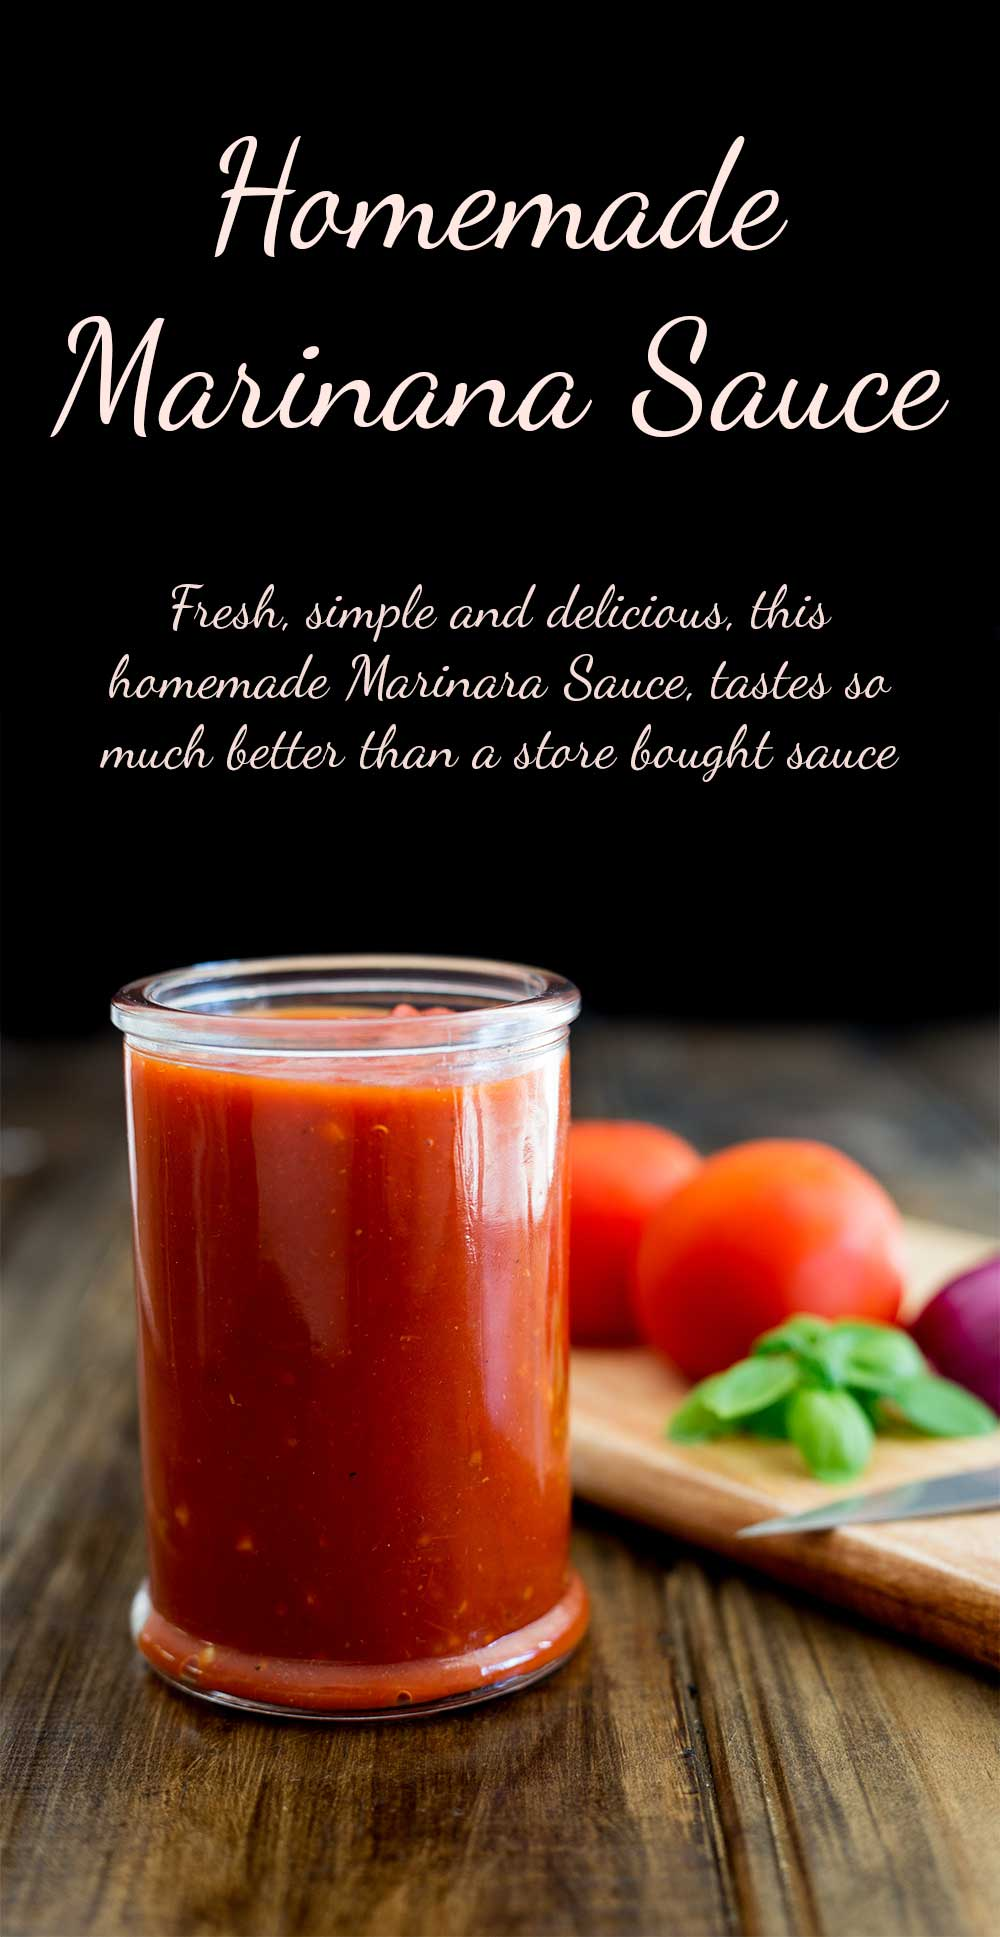 Fresh, simple and delicious, this homemade Marinara Sauce, tastes so much better than a store bought sauce. It is the basis for so many meals, use it on pasta, in your lasagne, as a topping for pizza and so much more!